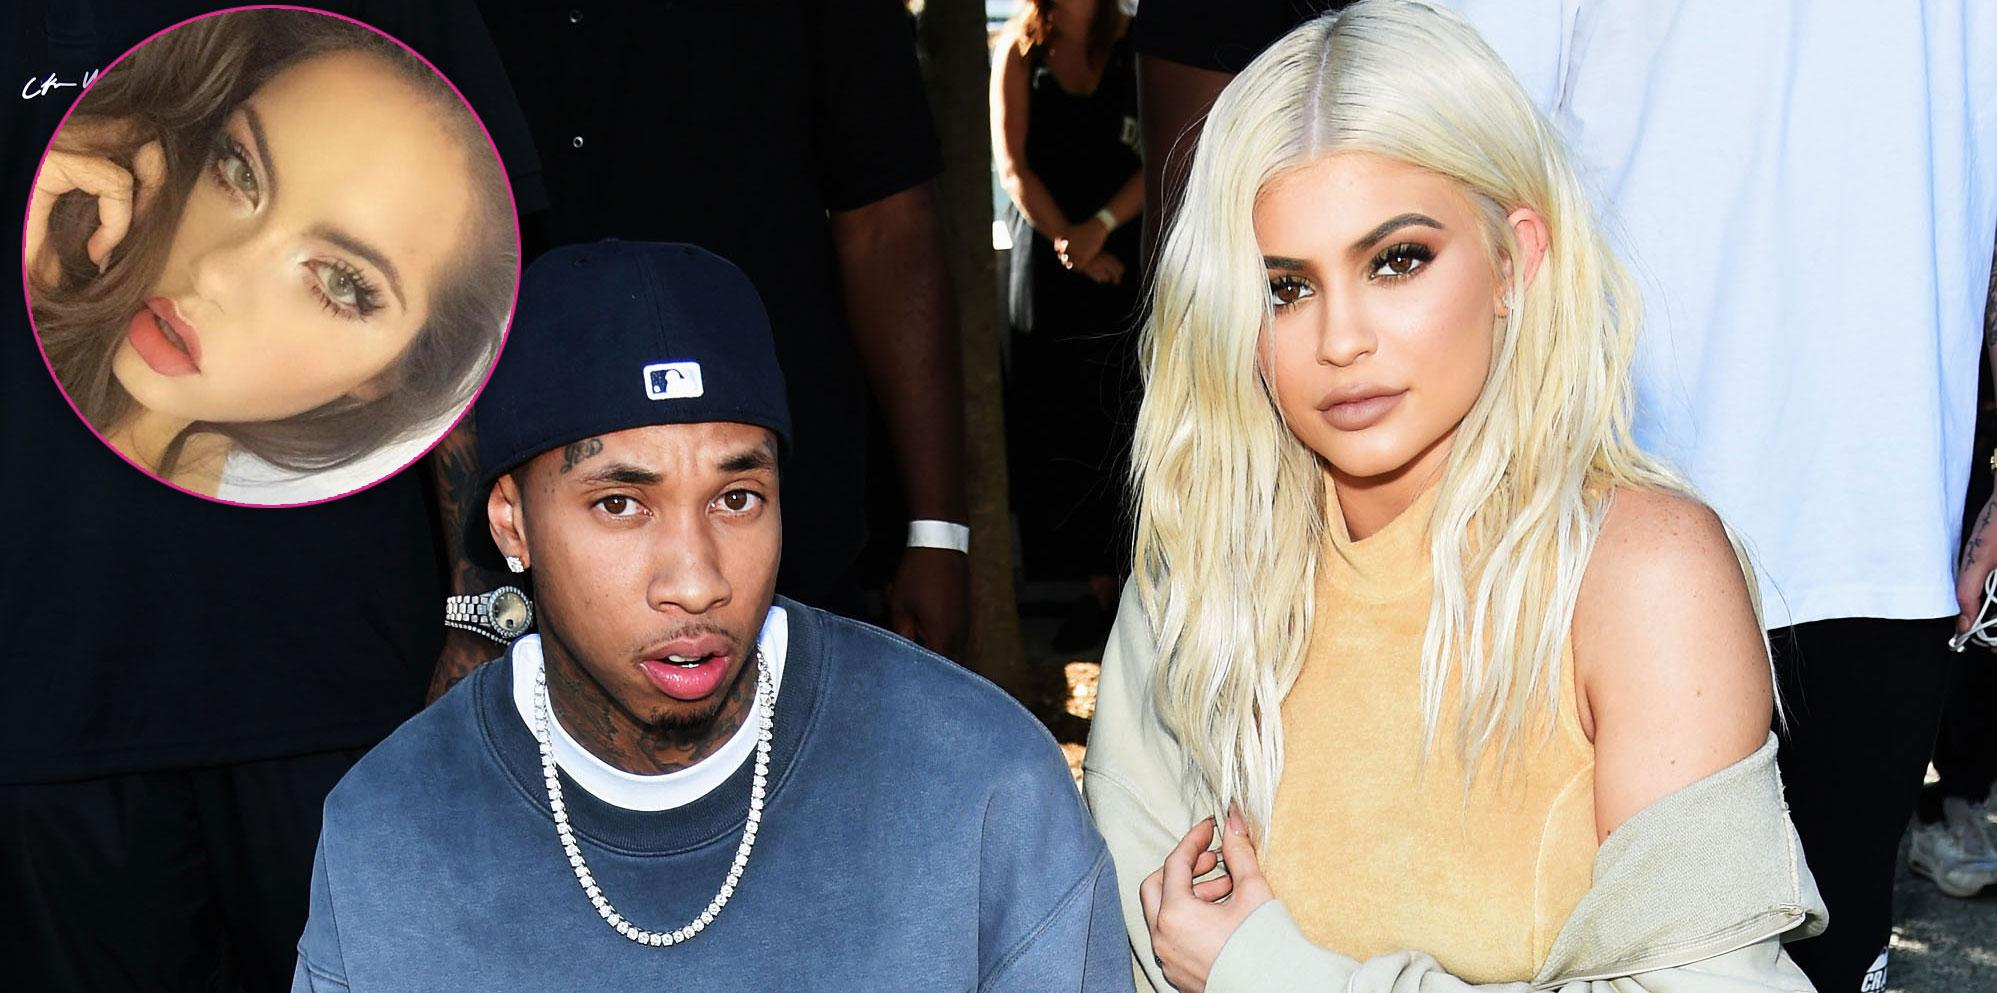 Kylie jenner demands tyga fire hot assistant